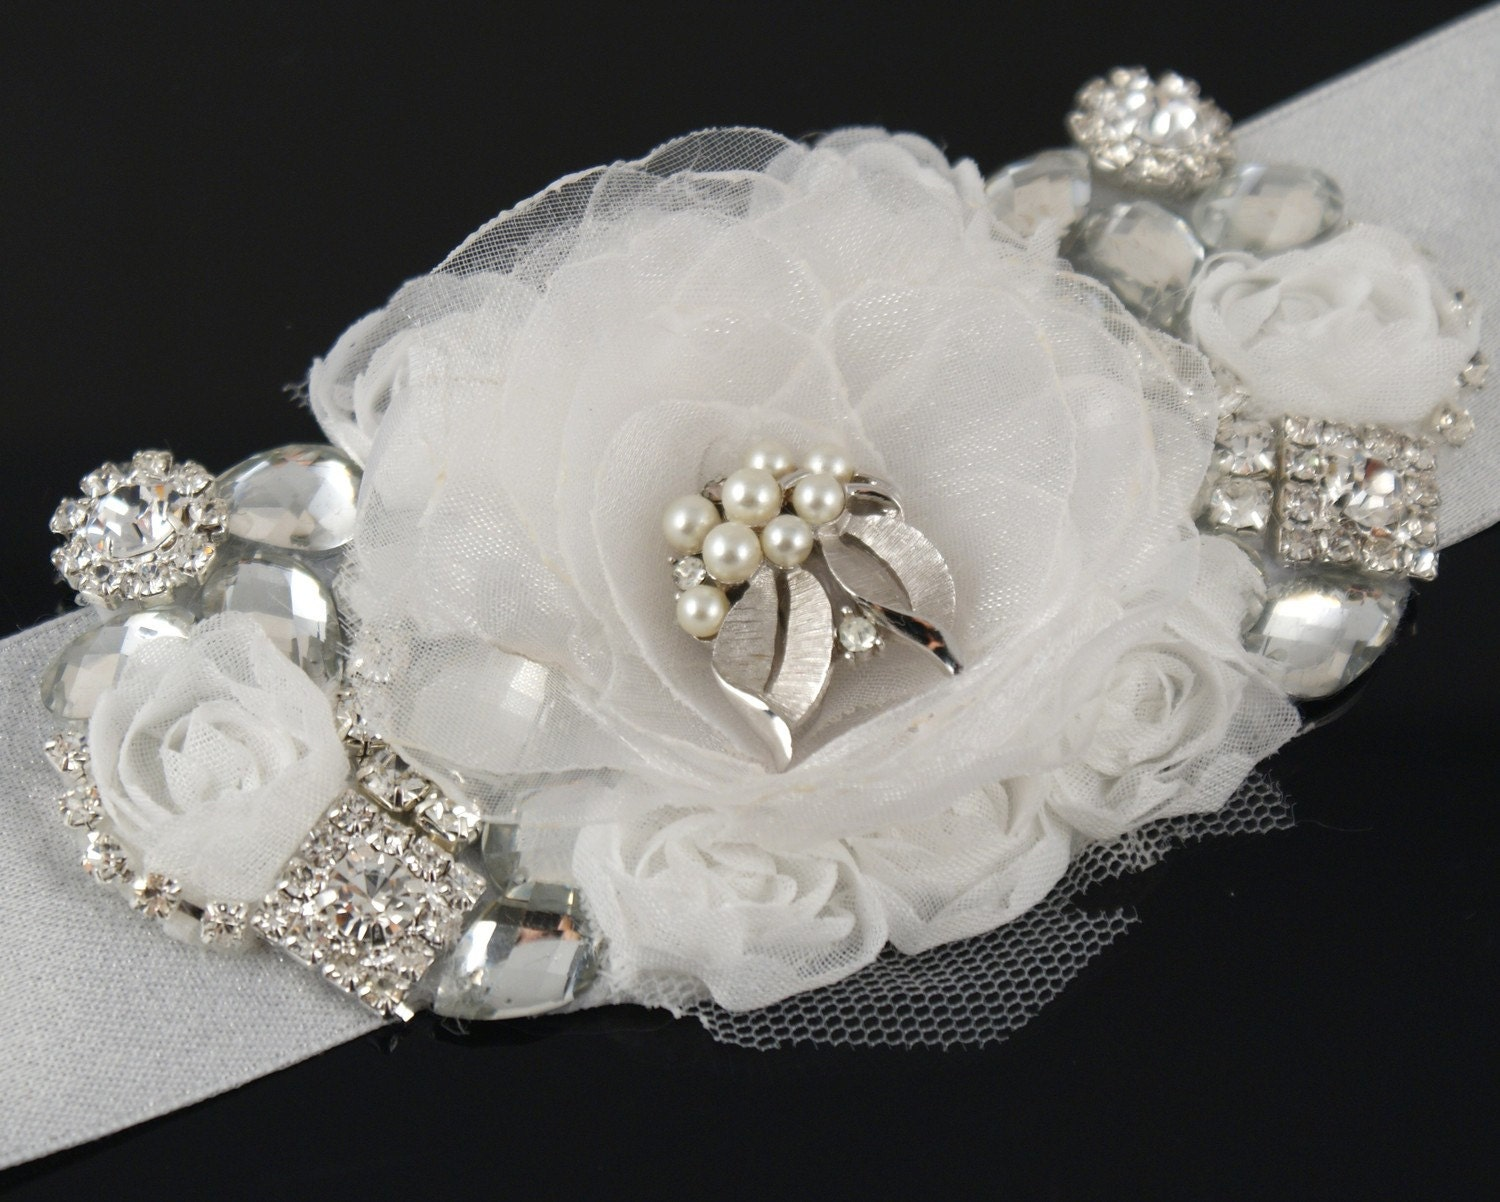 Silver Adornment - Bridal Statement Cuff - Corsage with White Organza Flower, Silver Jewels and Vintage Brooch